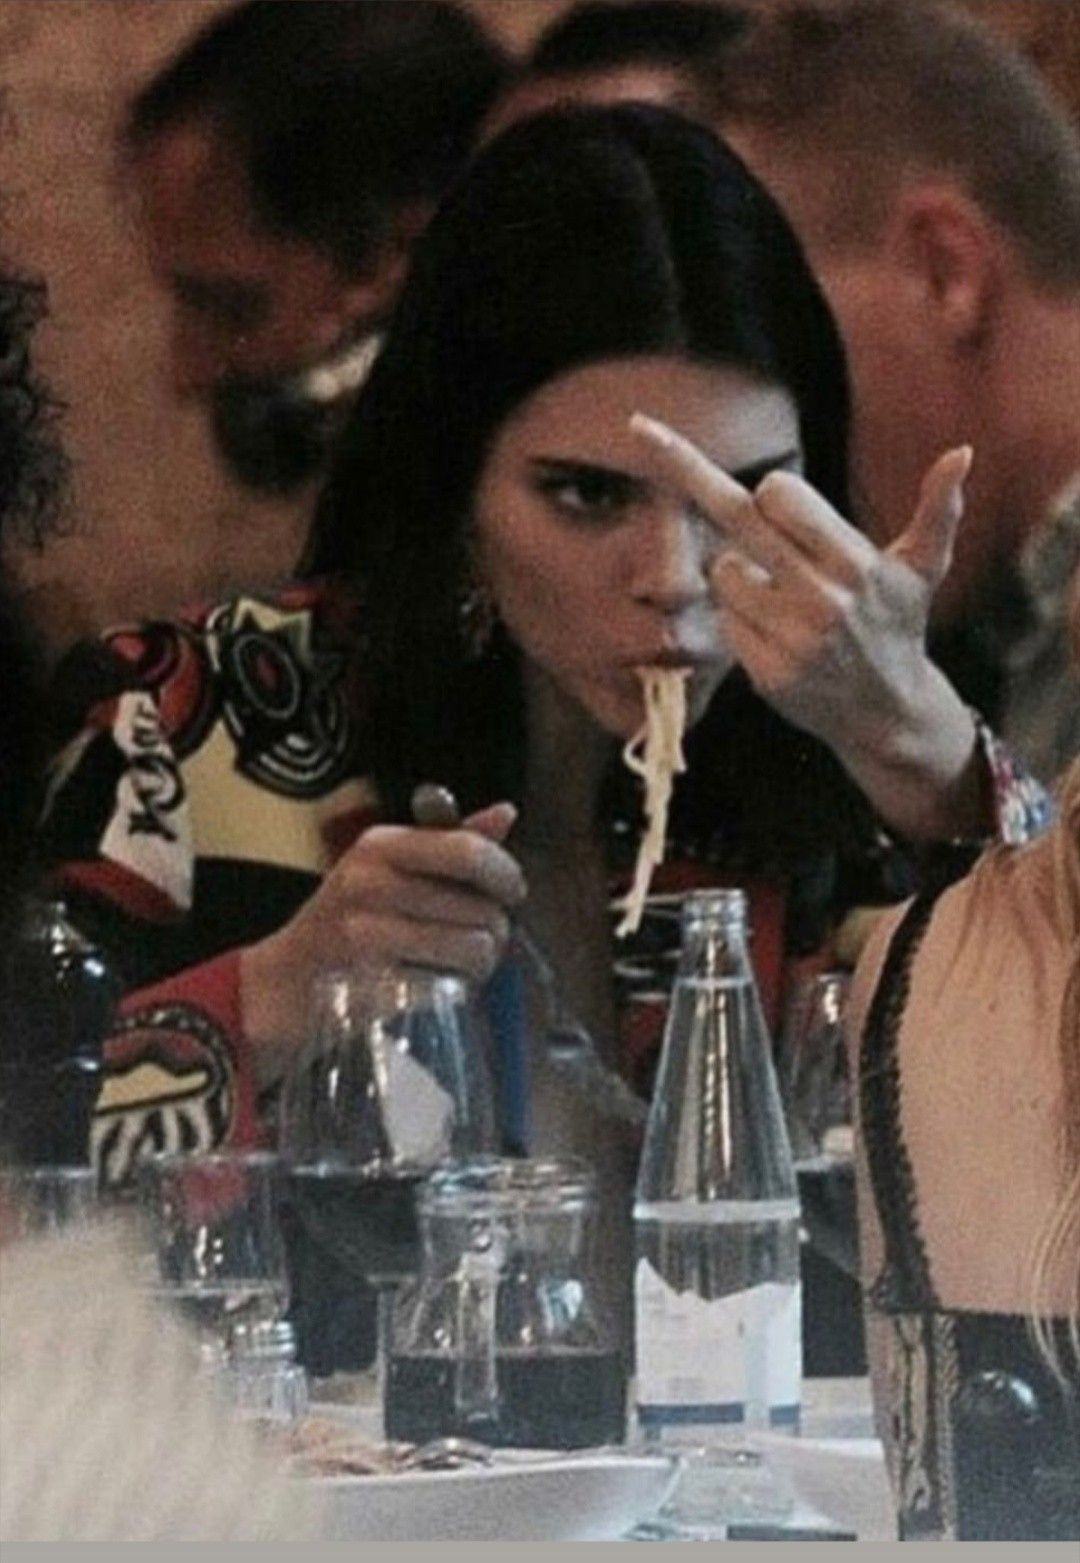 Kendall Jenner flipping off paparazzi in 2020 Kendall jenner 1080x1563